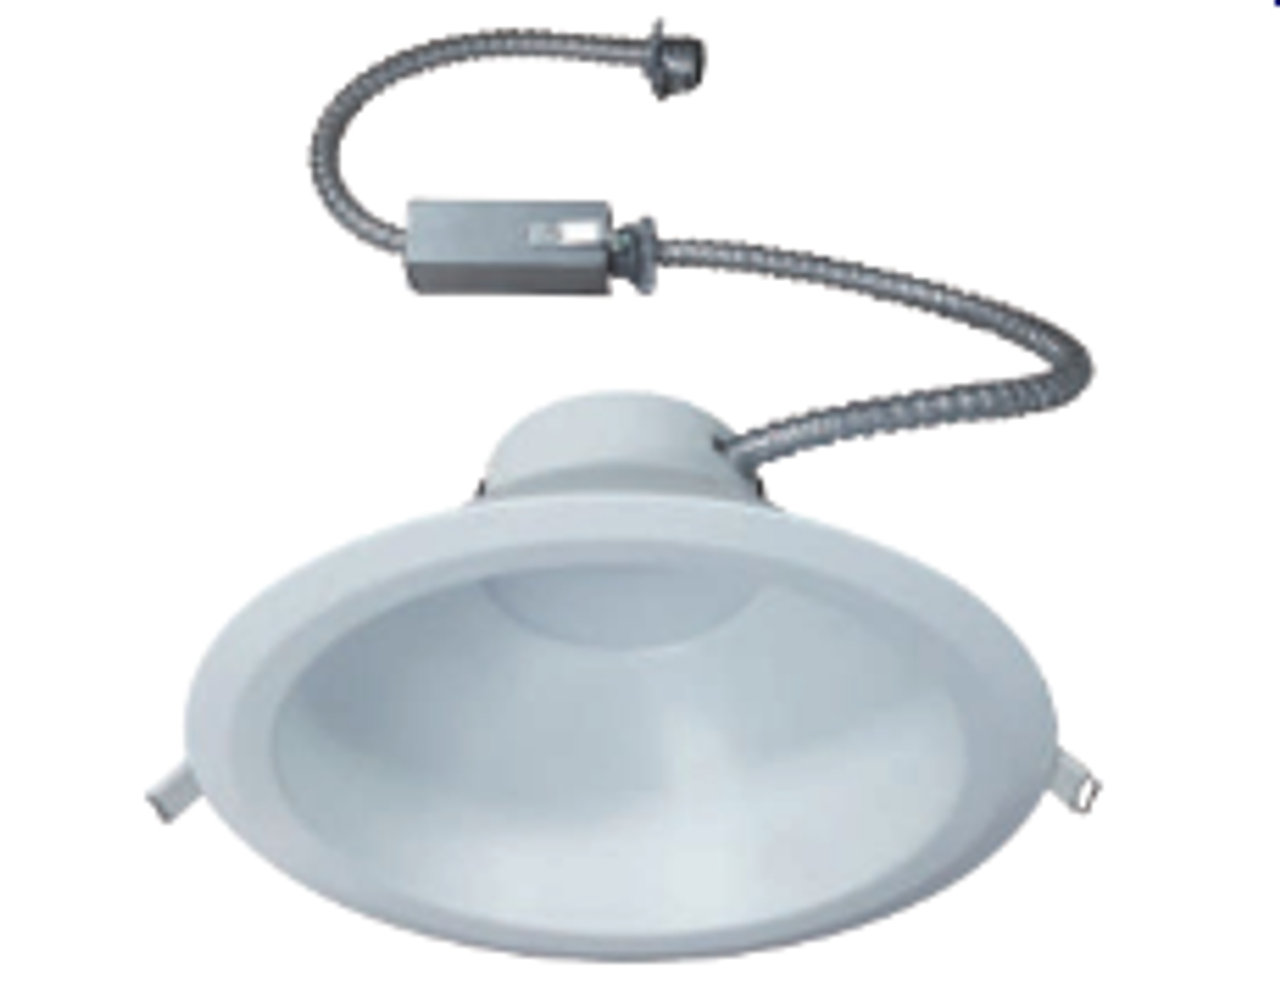 """The VSFK8 is a Commercial grade, DoB, AC Direct LED, Recessed Downlight Retrokit with integral one piece housing and mouse-trap spring clips to allow for easy installation. Designed for use with existing 8"""" Commercial Incandescent, Fluorescent and Metal Halide Housings. It is also compatible with most 8"""" commercial housings measuring at least 6-7/8"""" high, with apertures between 8"""" and 8-3/4"""". Available with a 15W, 20W, 30W or 40W, high efficacy Universal voltage, DoB LED module with Triac and 0-10V dimming. The optical diffuser produces high lumen transmission and even ilumination. Suitable for Damp Locations"""